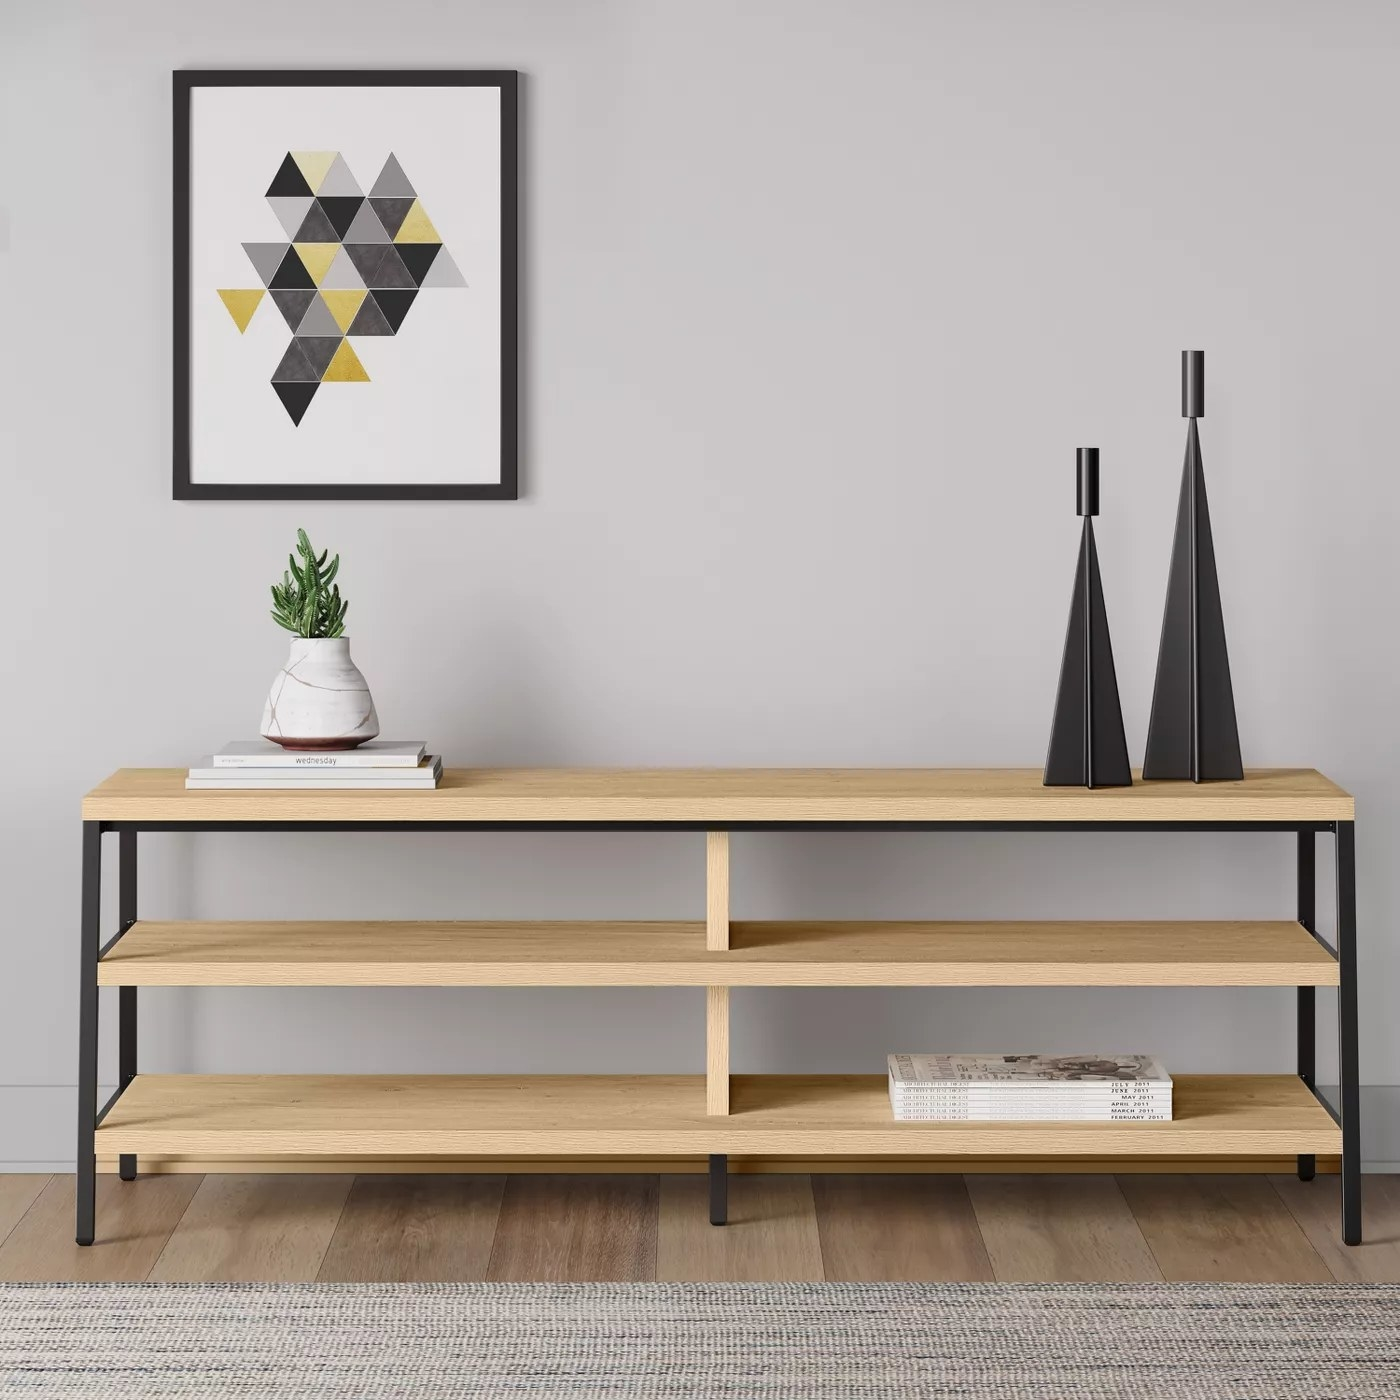 The TV stand with three shelves